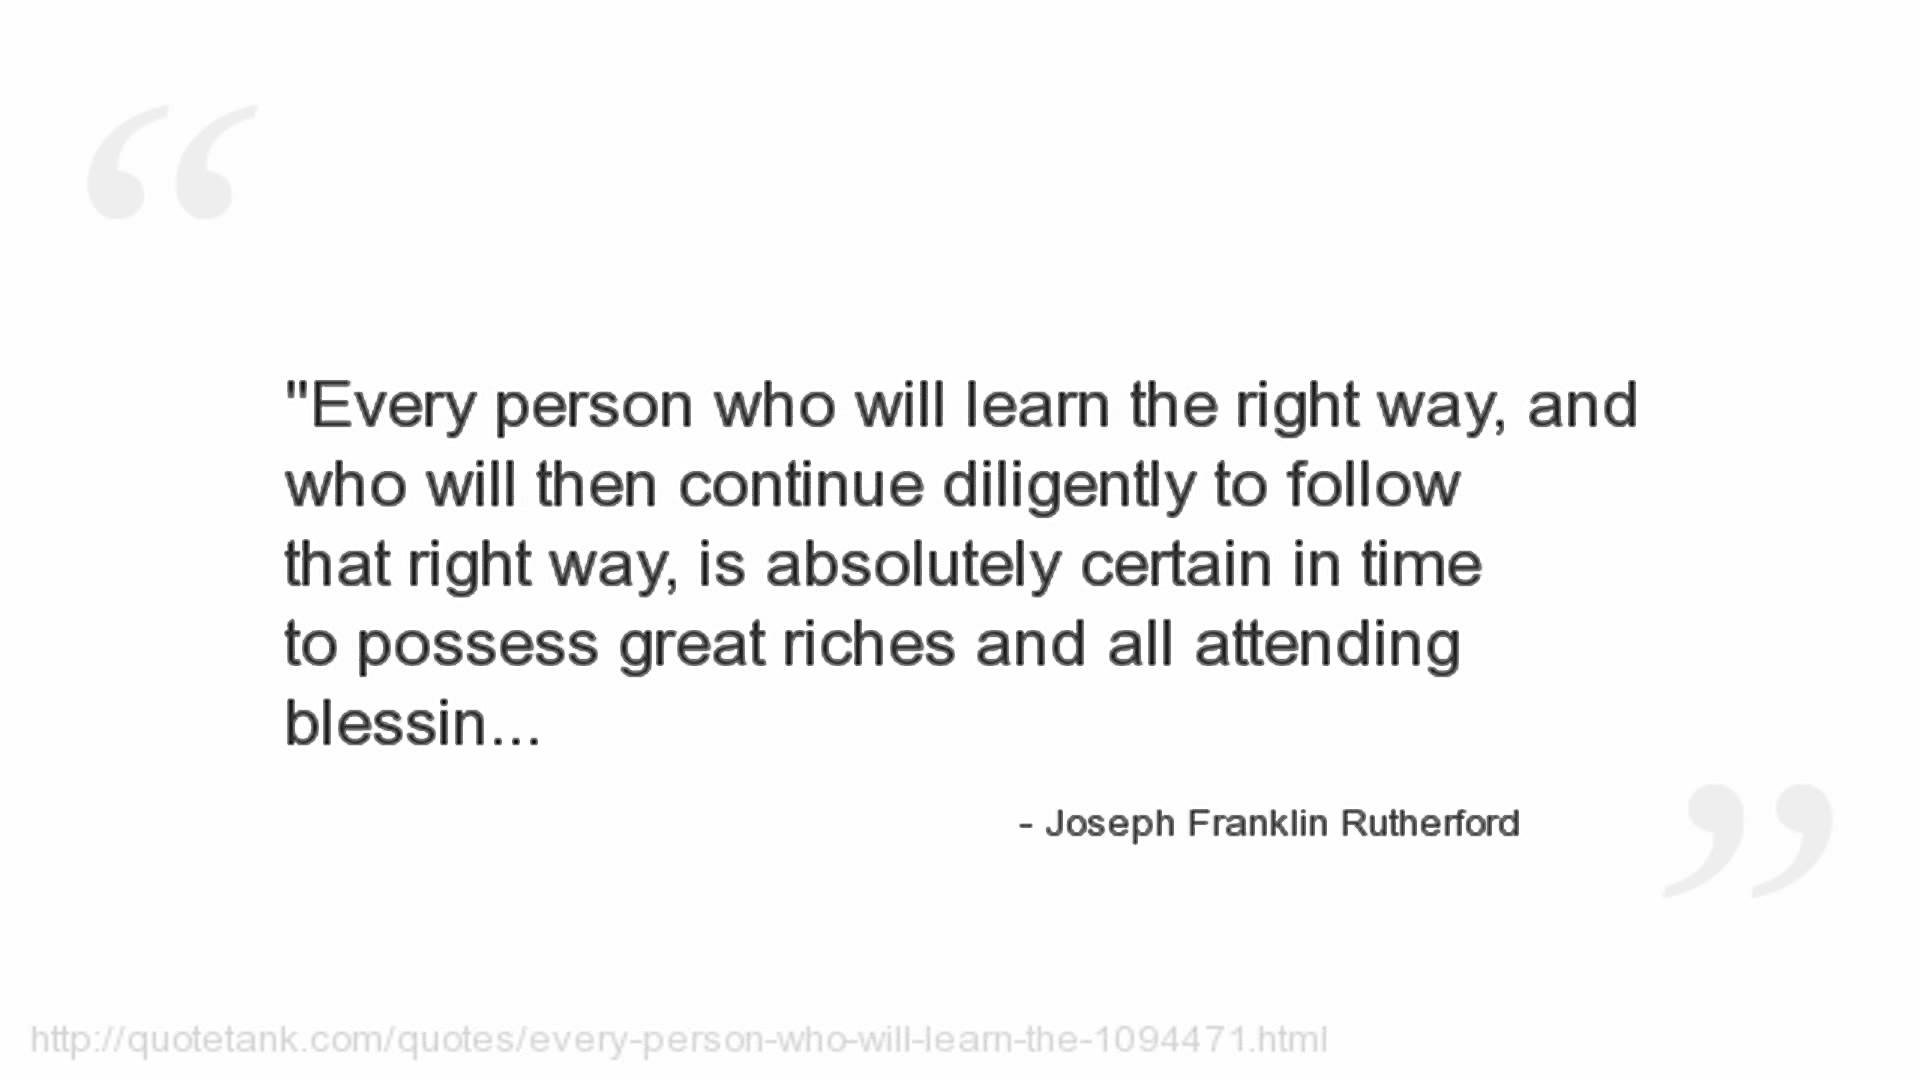 Joseph Franklin Rutherford's quote #7